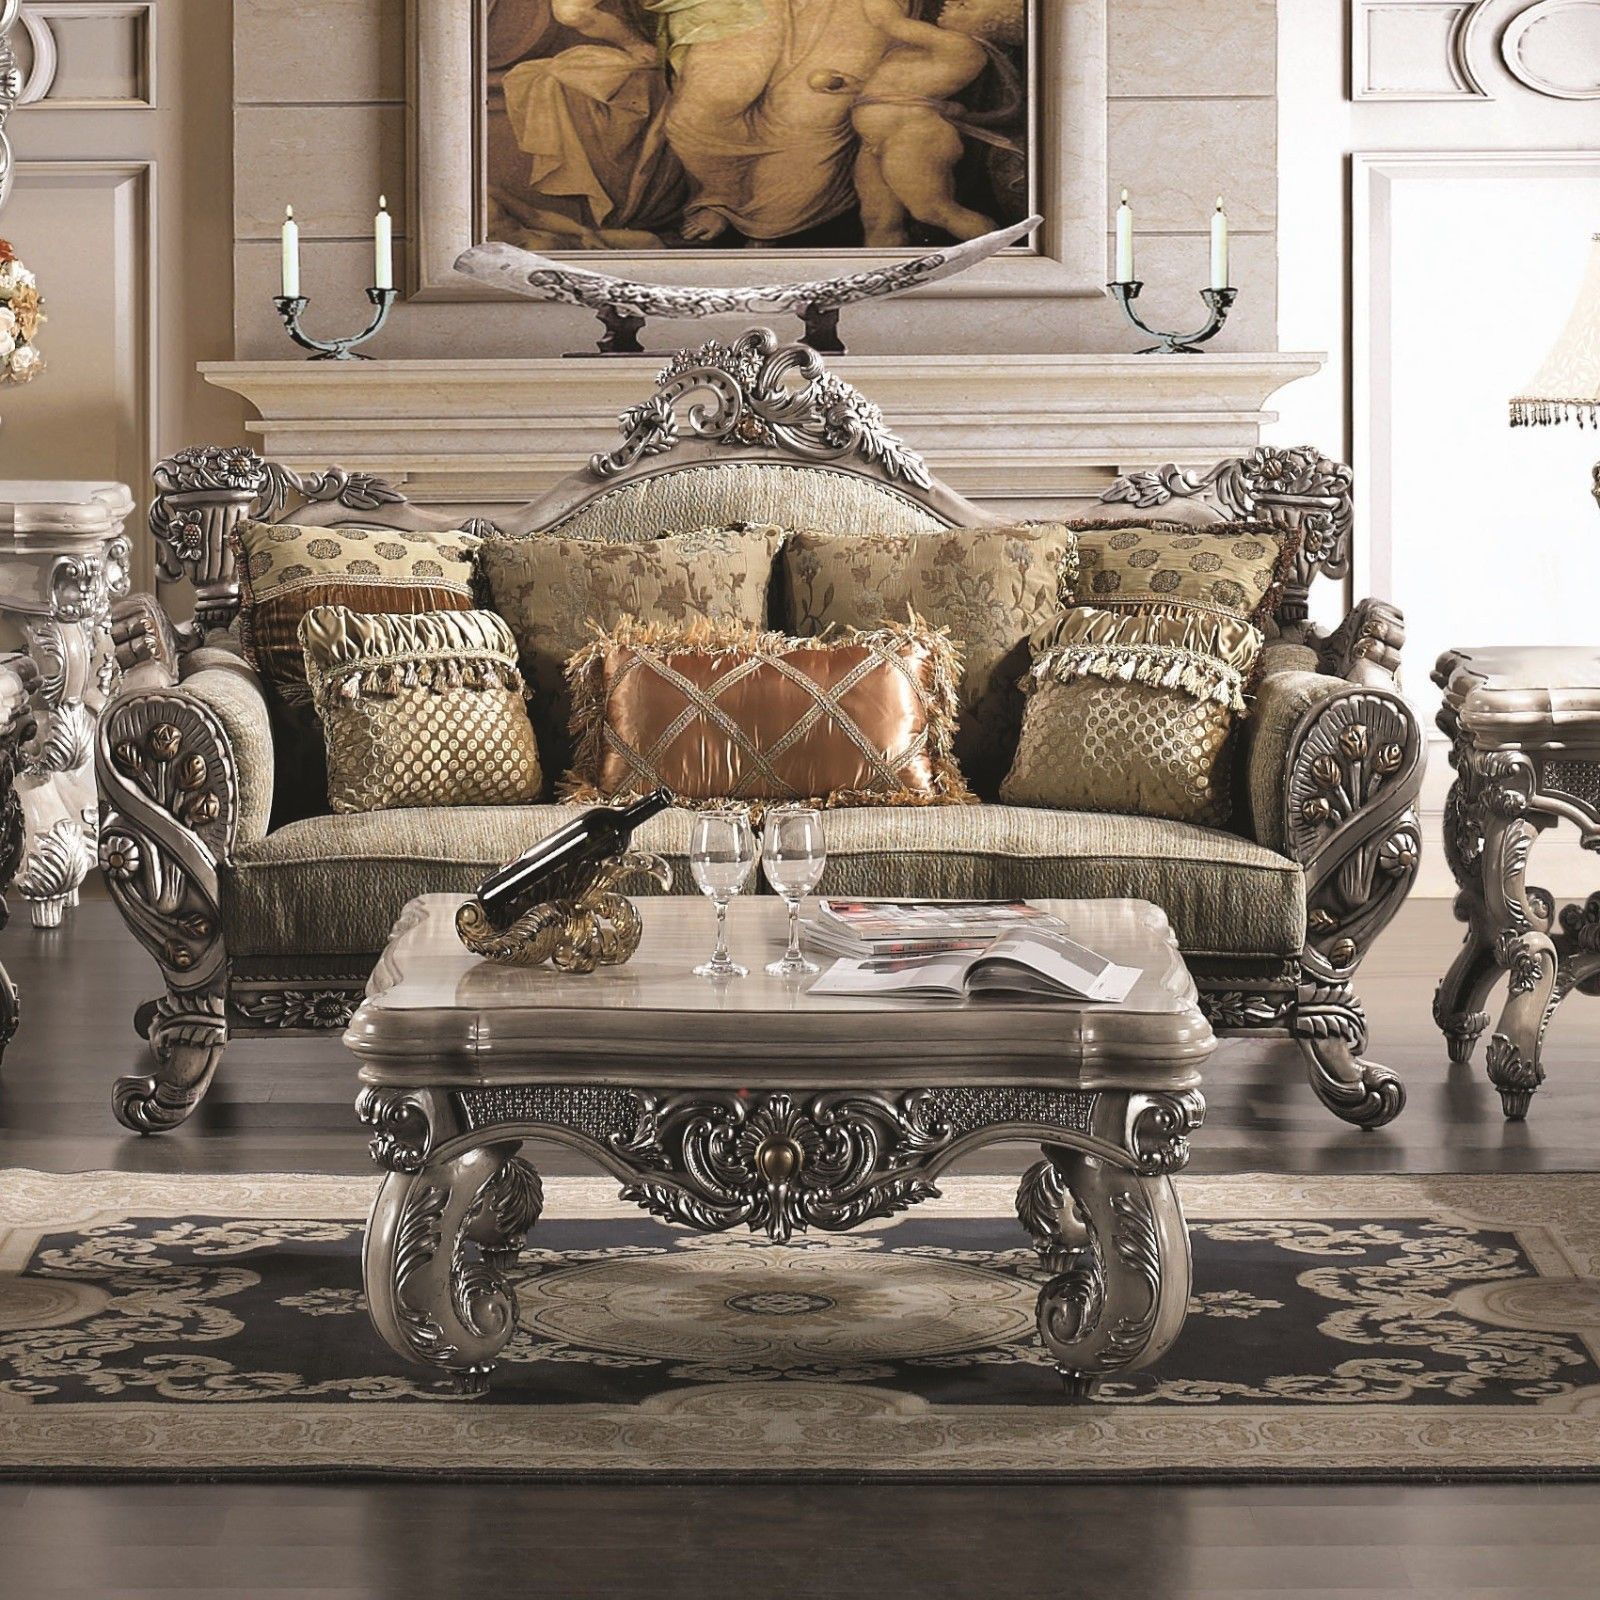 Get Inspired With Vintage Coffee Tables Home Decor Living Room for Traditional Living Room Sets